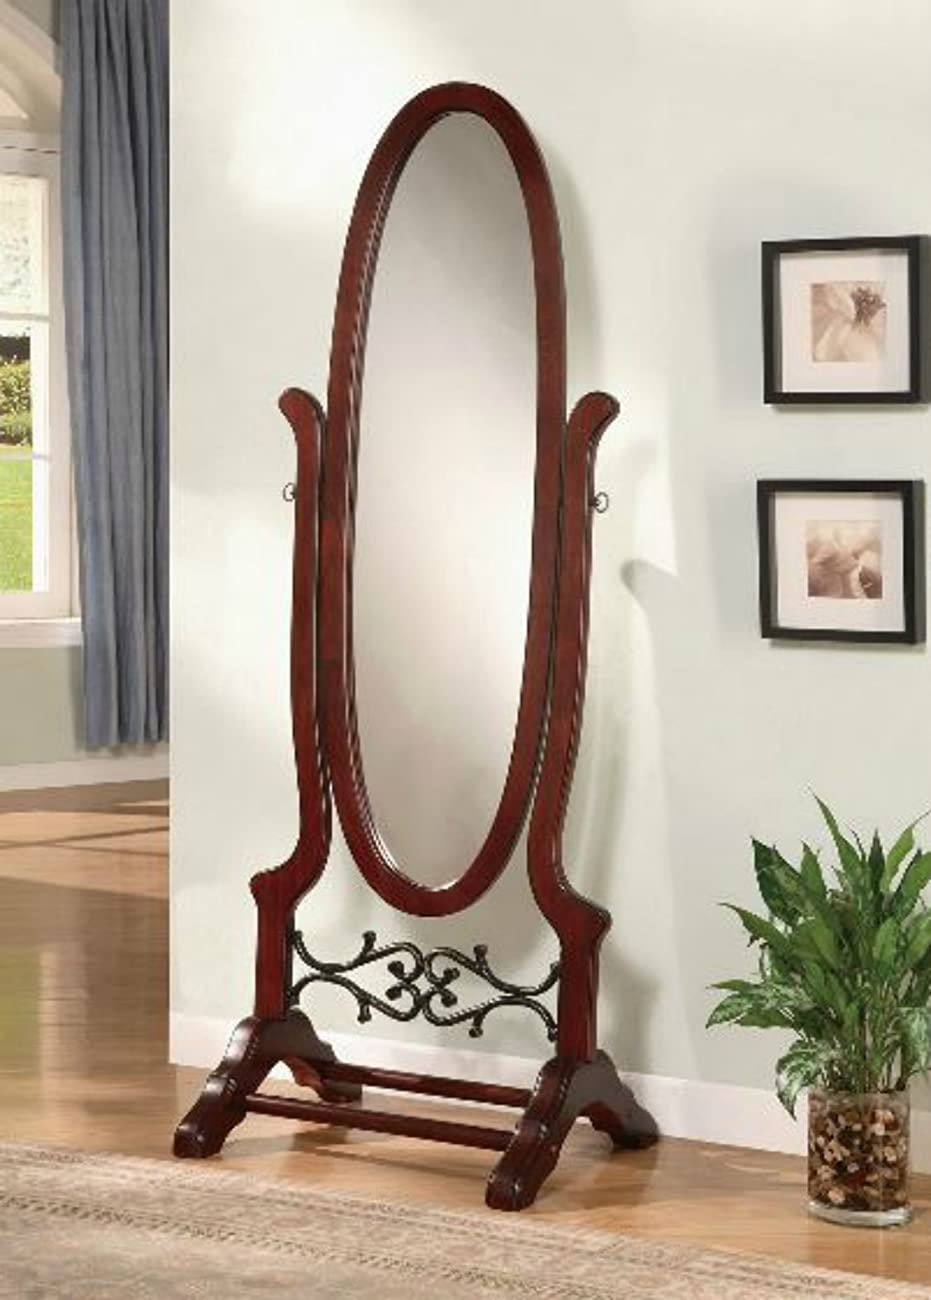 Wildon Home Cherry Full Length Standing Seatac Cheval Floor Mirror - This Oval Floor Mirror Is in Beautiful Contemporary Style and Is the Perfect Addition to Your Bedroom, Living Room, Family Room, Office or Any Other Room in You Home 0